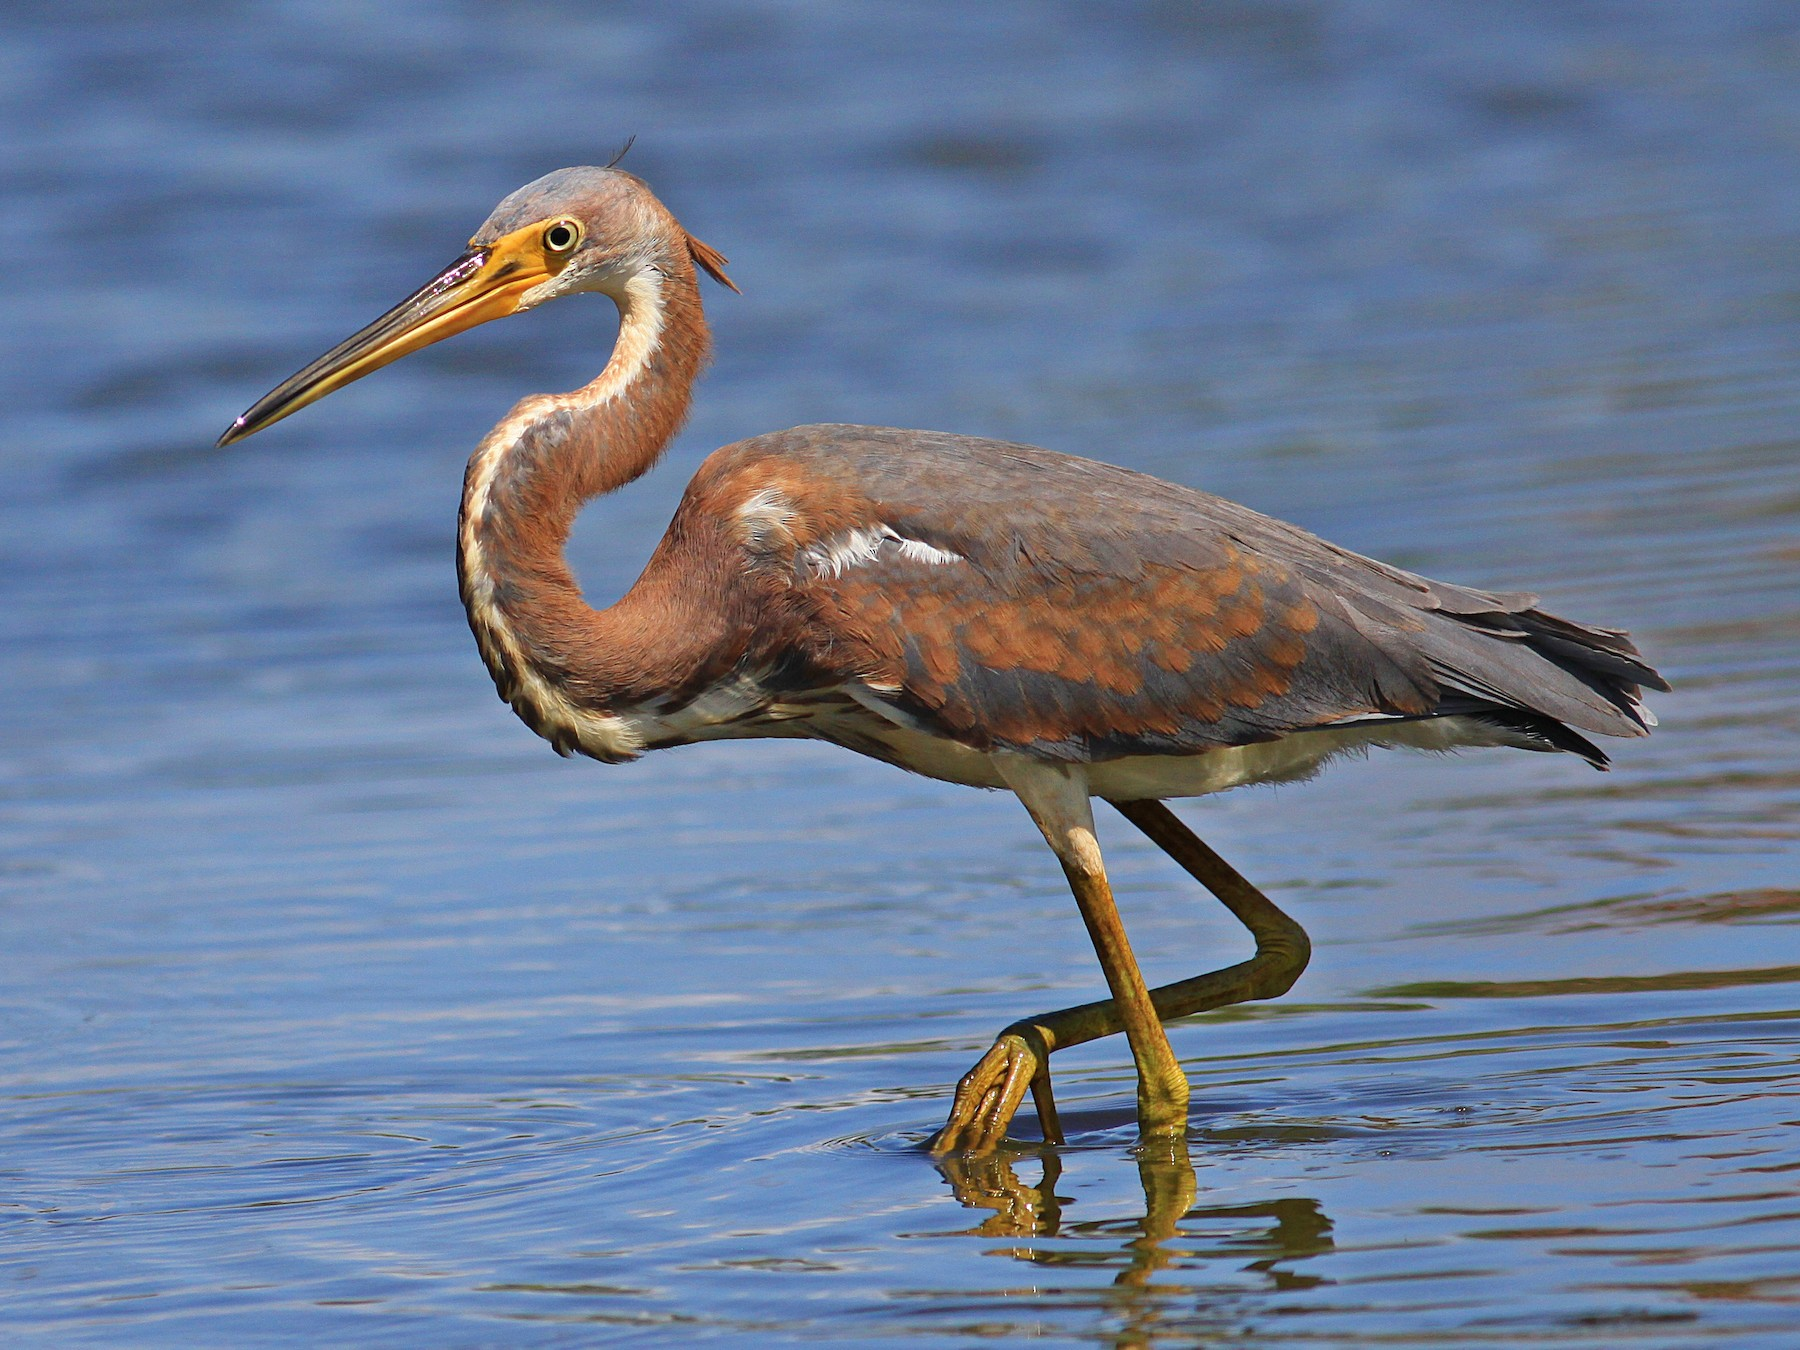 Tricolored Heron - Rufus Wareham